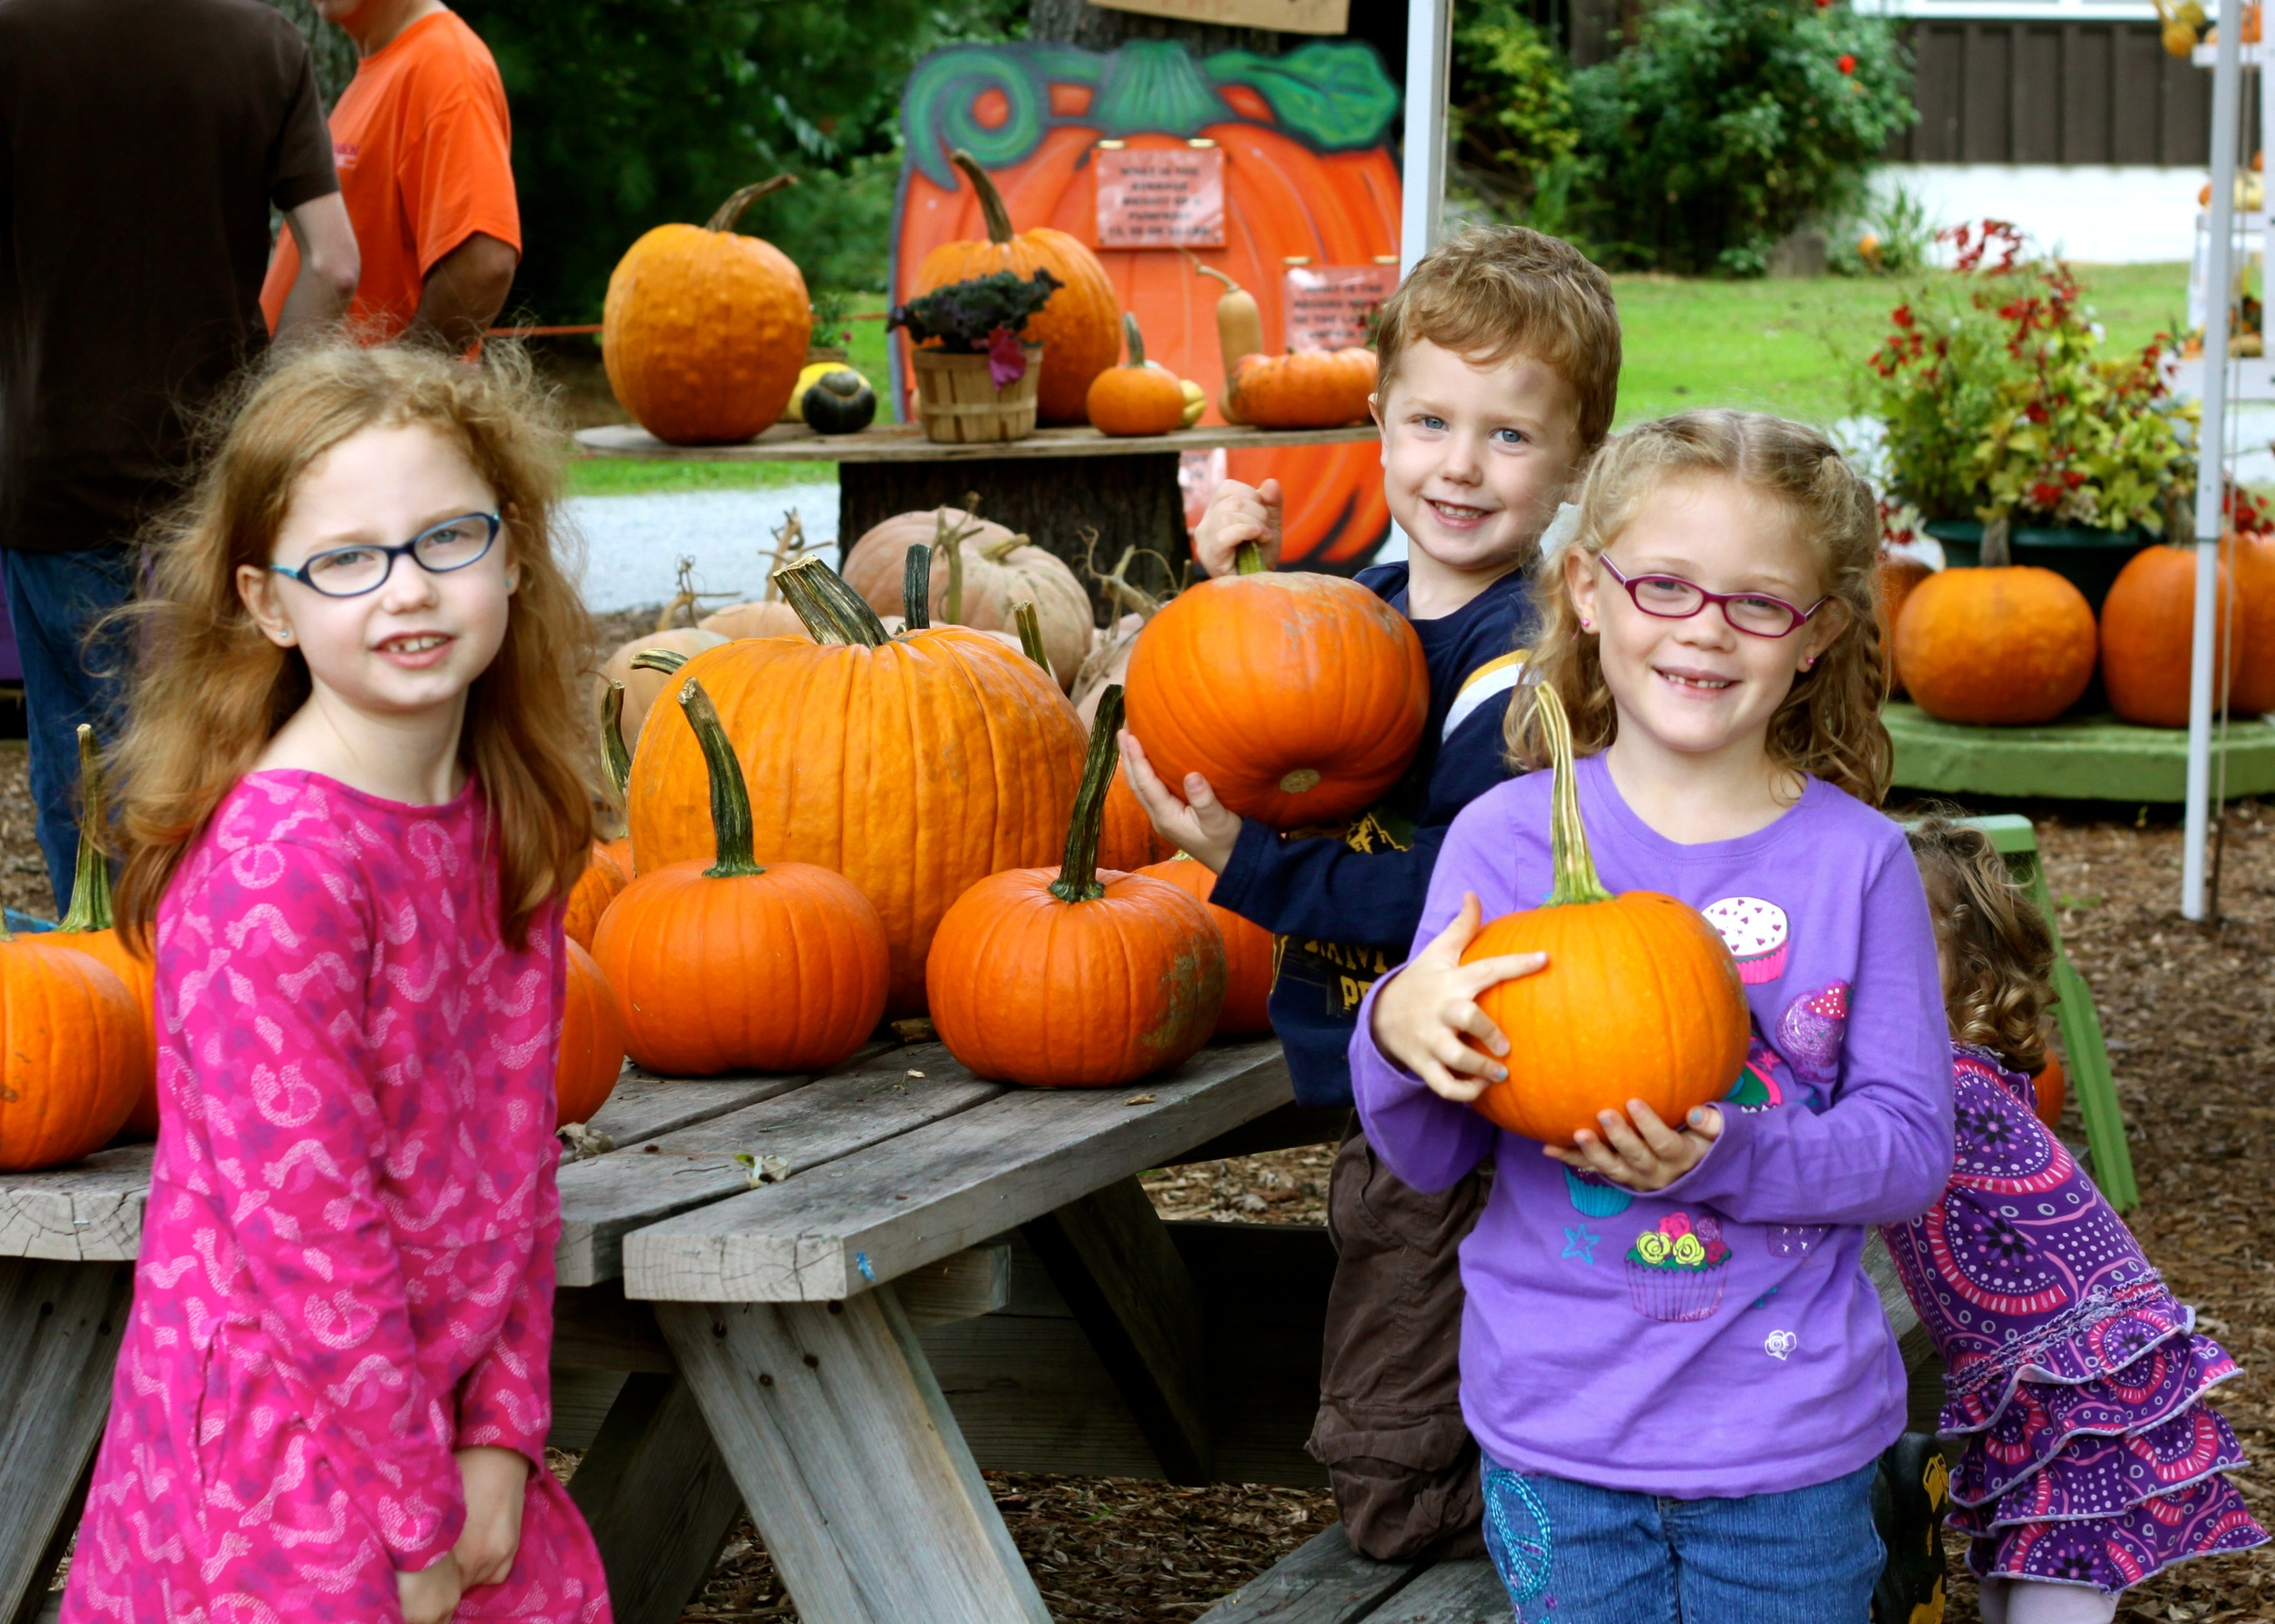 Pumpkin picking with the Lydas!